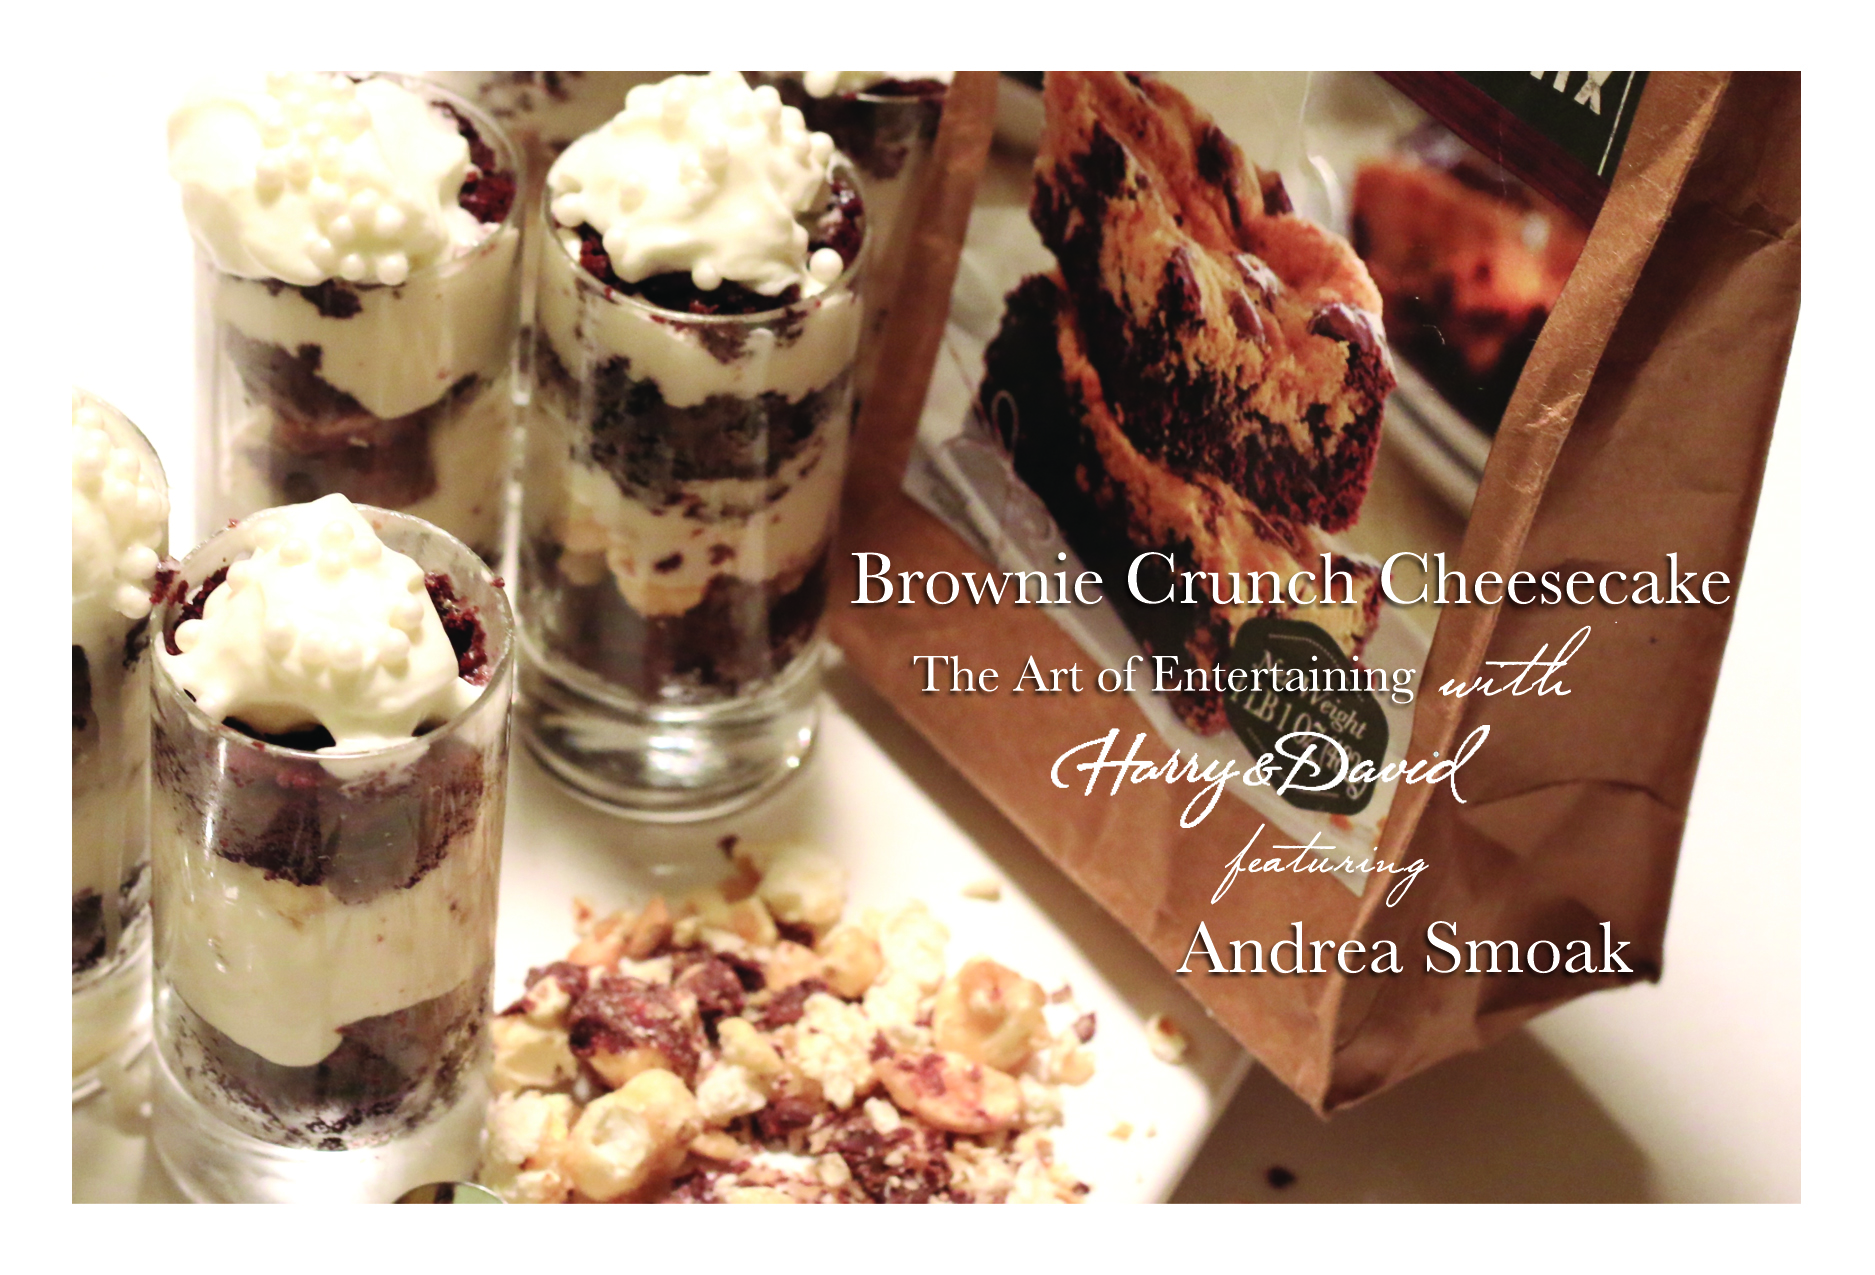 Brownie_Crunch_Cheesecake_4x6_Landscape.jpg